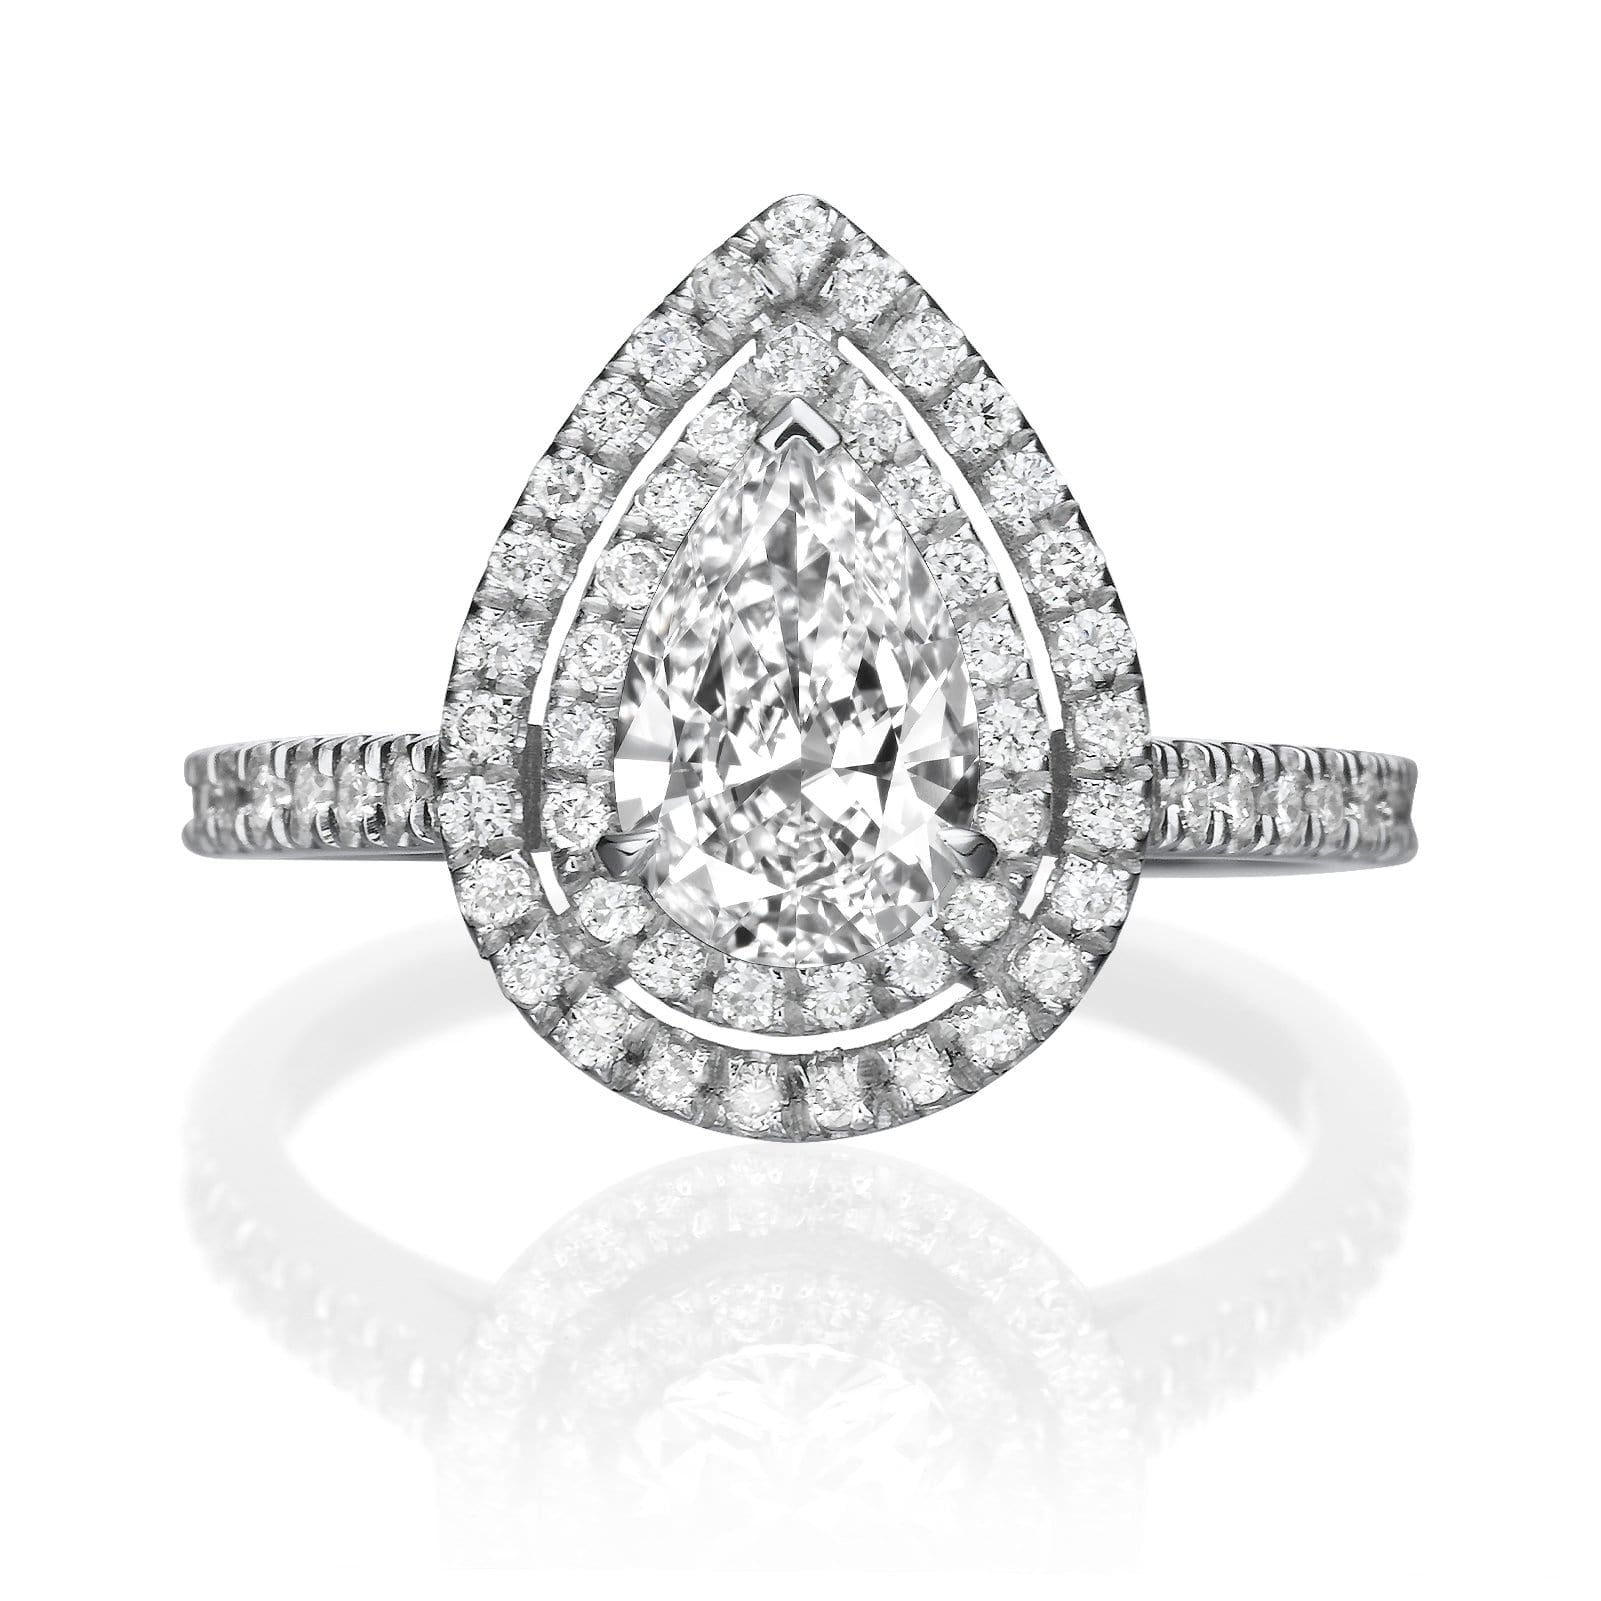 1.92 ct Pear Shaped Diamond Engagement Ring